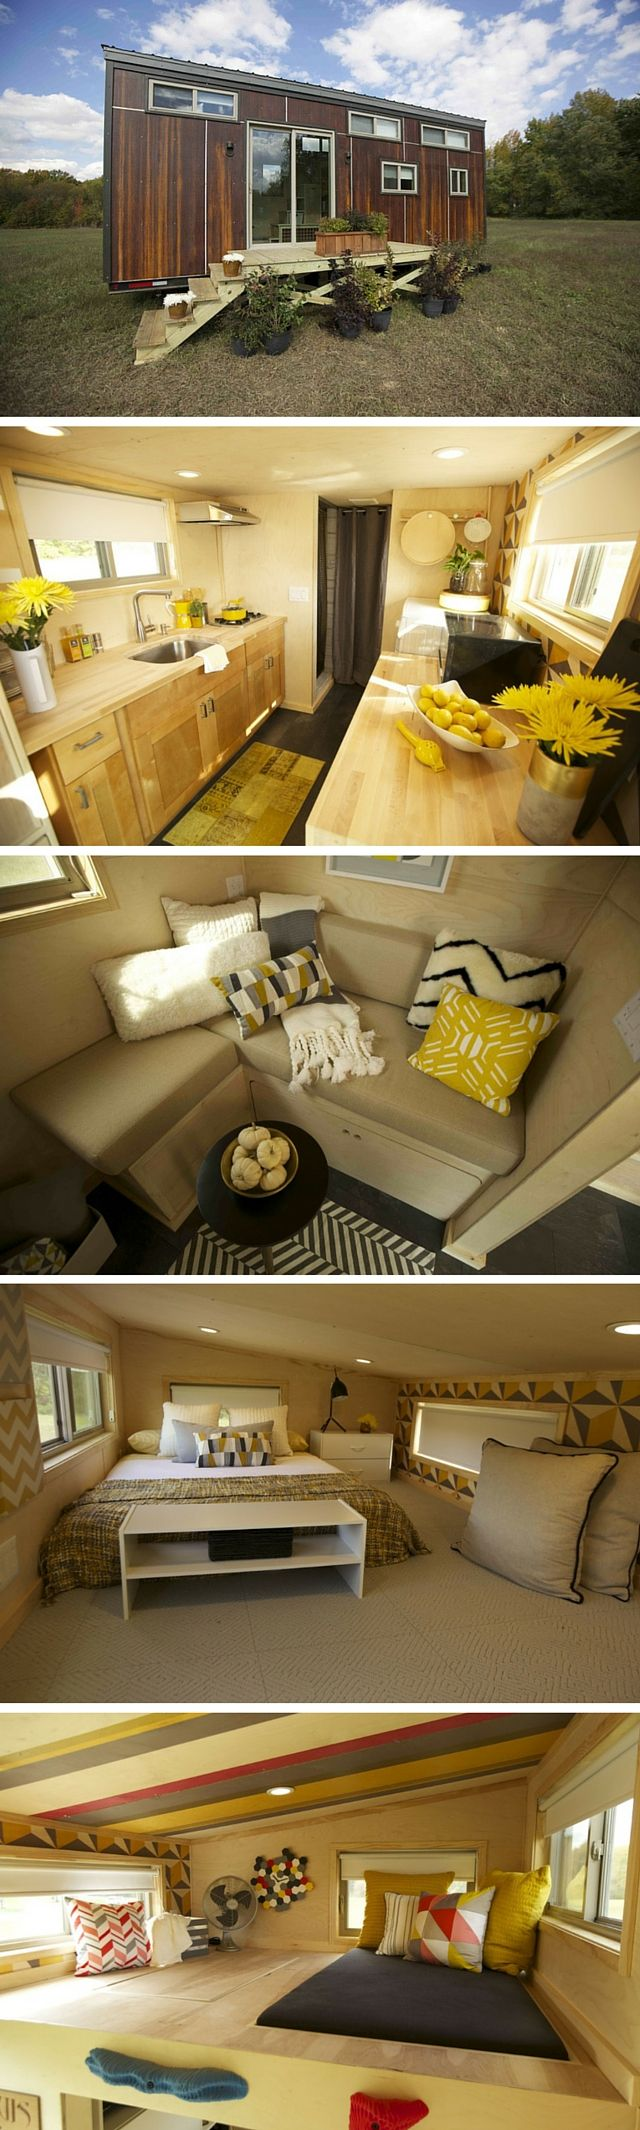 Best 25+ Tiny homes on wheels ideas on Pinterest